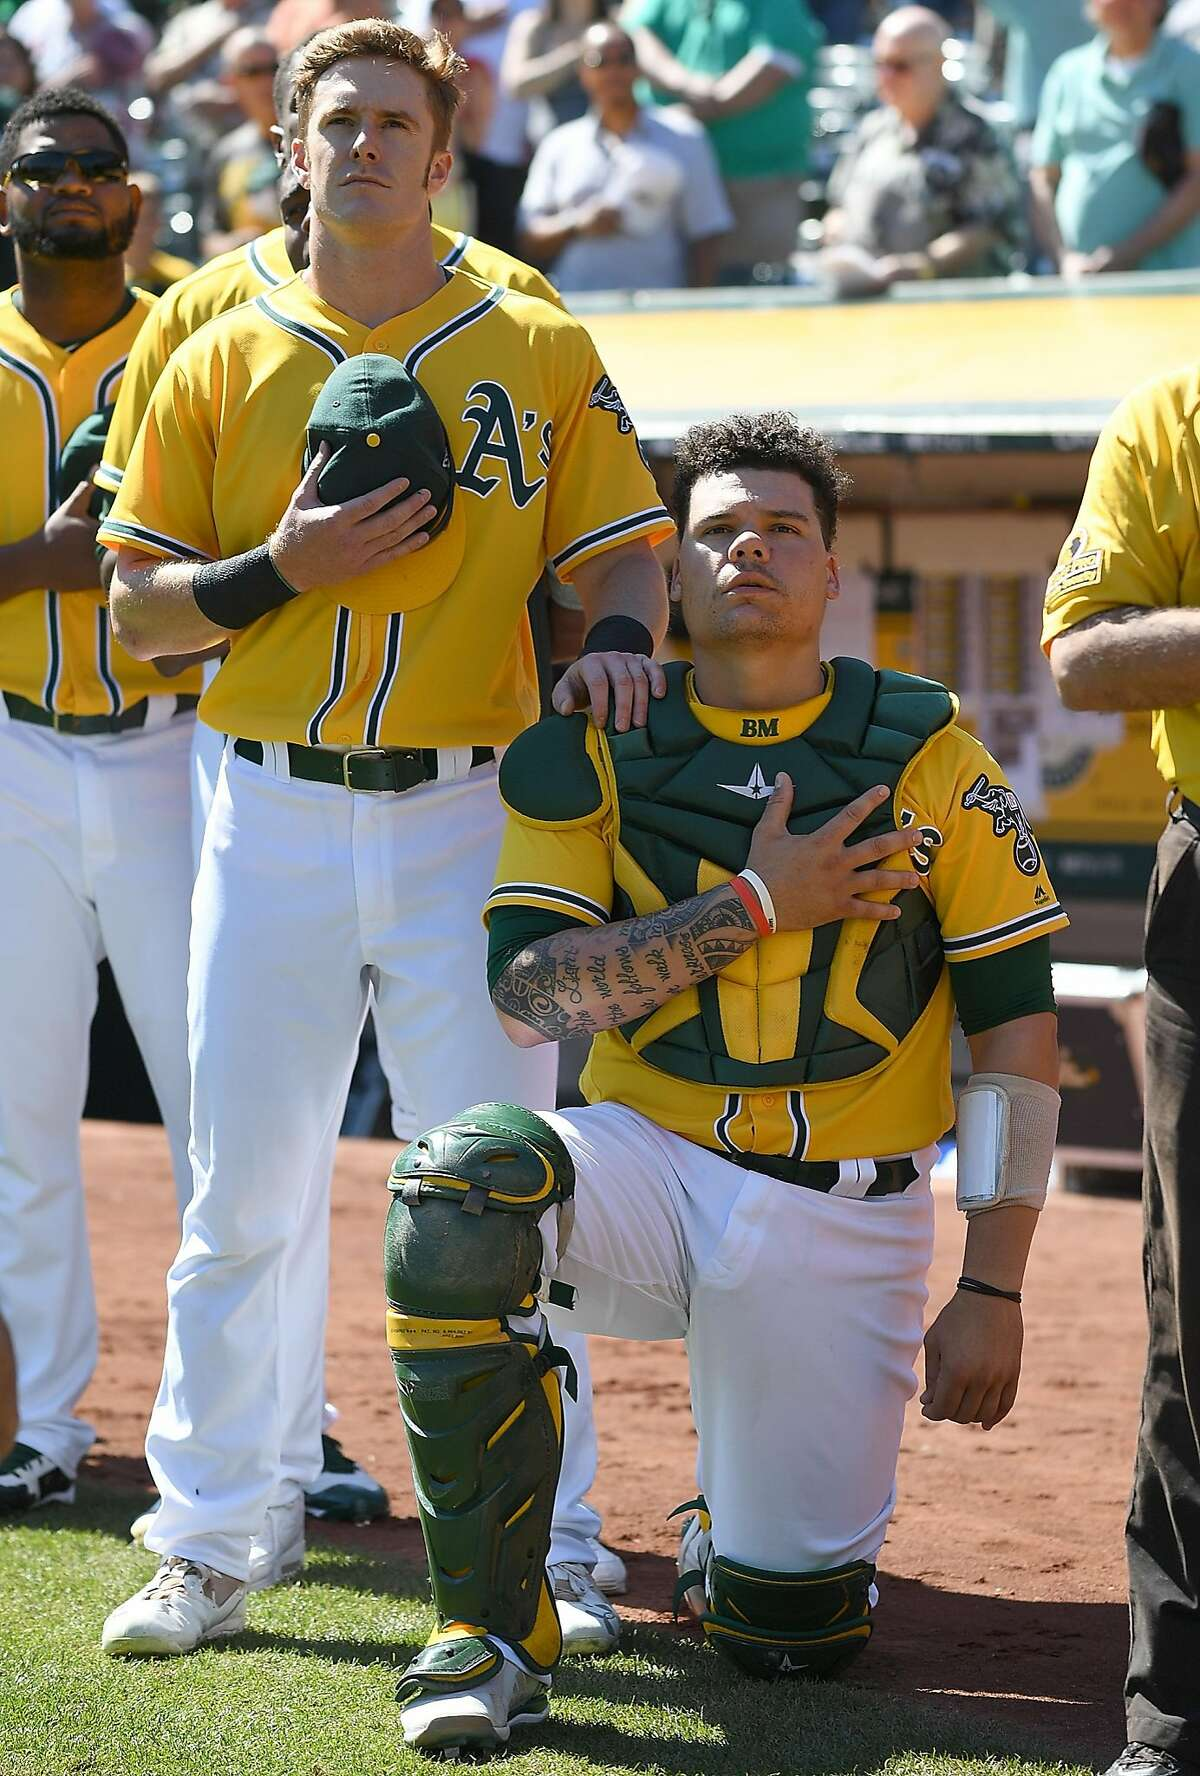 OAKLAND, CA - SEPTEMBER 27: Bruce Maxwell #13 of the Oakland Athletics kneels in protest next to teammate Mark Canha #20 duing the singing of the National Anthem prior to the start of the game against the Seattle Mariners at Oakland Alameda Coliseum on September 27, 2017 in Oakland, California. (Photo by Thearon W. Henderson/Getty Images)